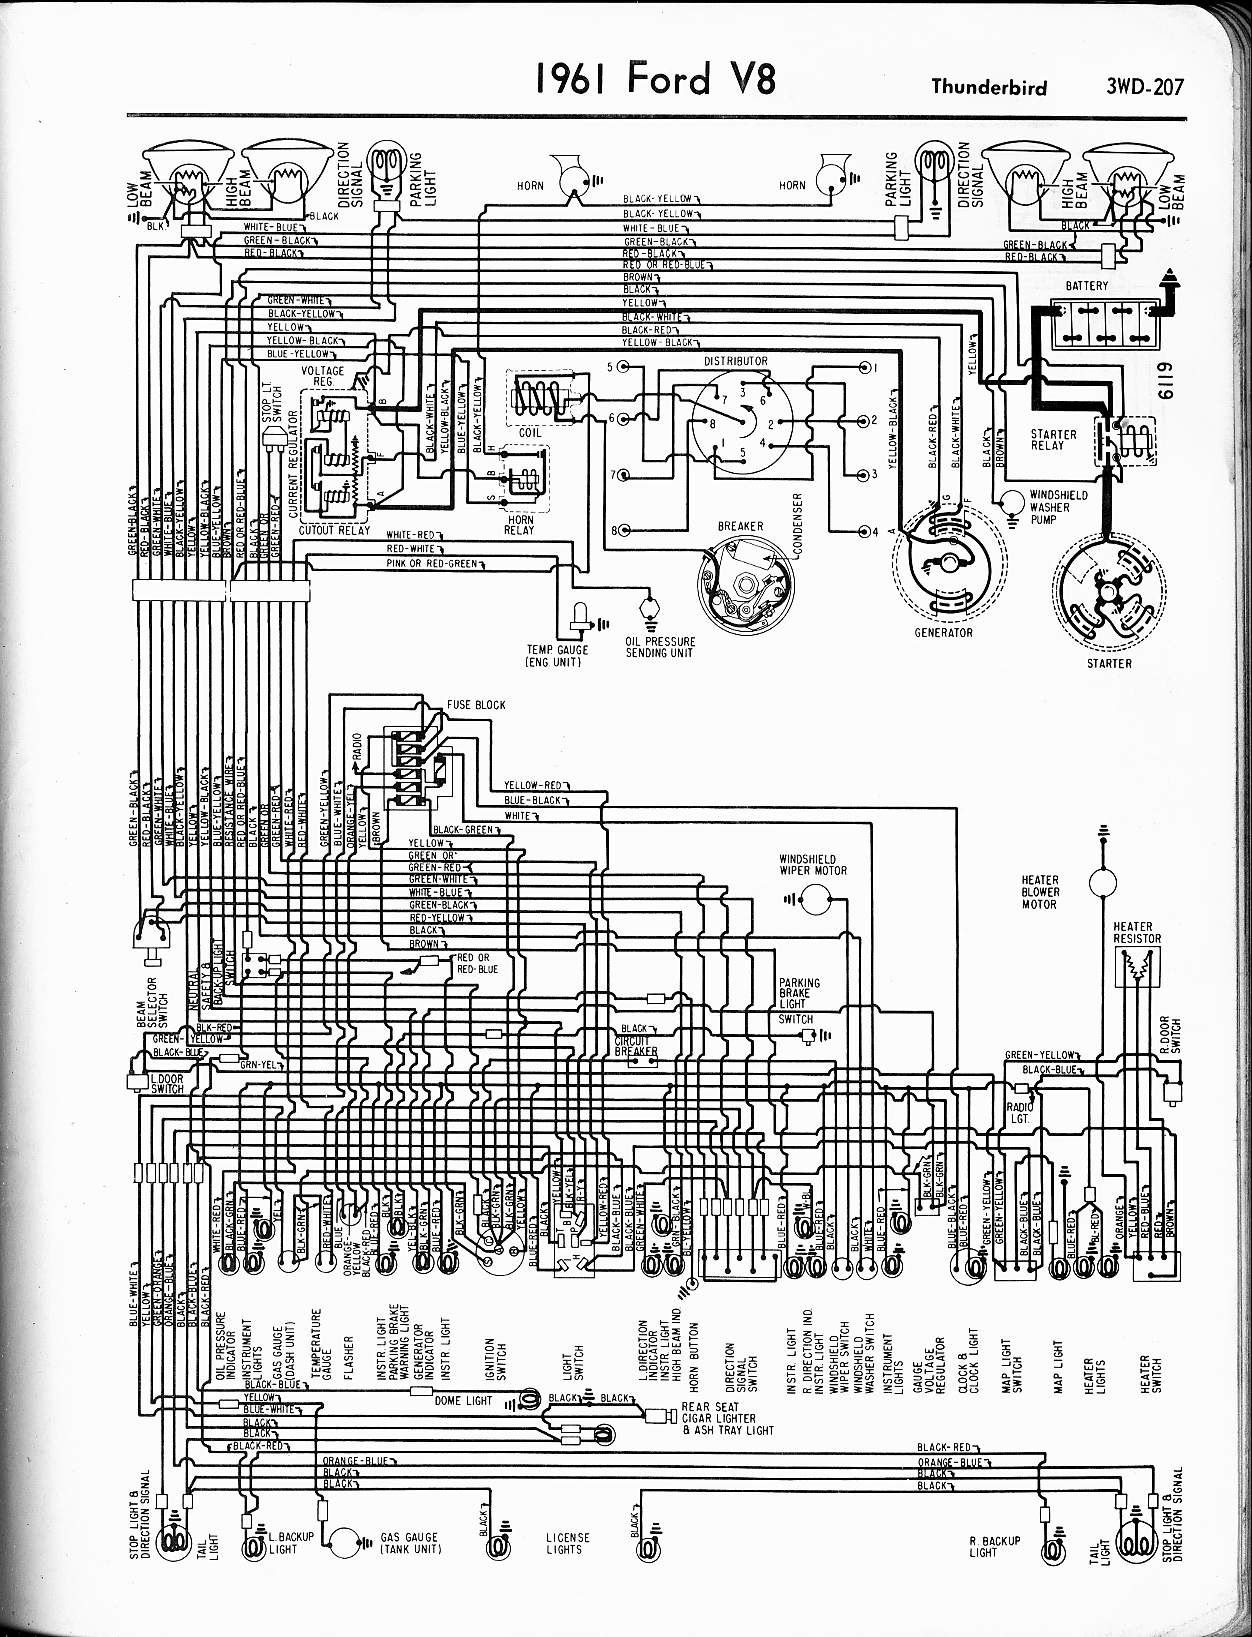 1962 Ford Galaxie Wiring Diagram Schematic List Of Hornblasters 1956 Fairlane Simple Rh David Huggett Co Uk